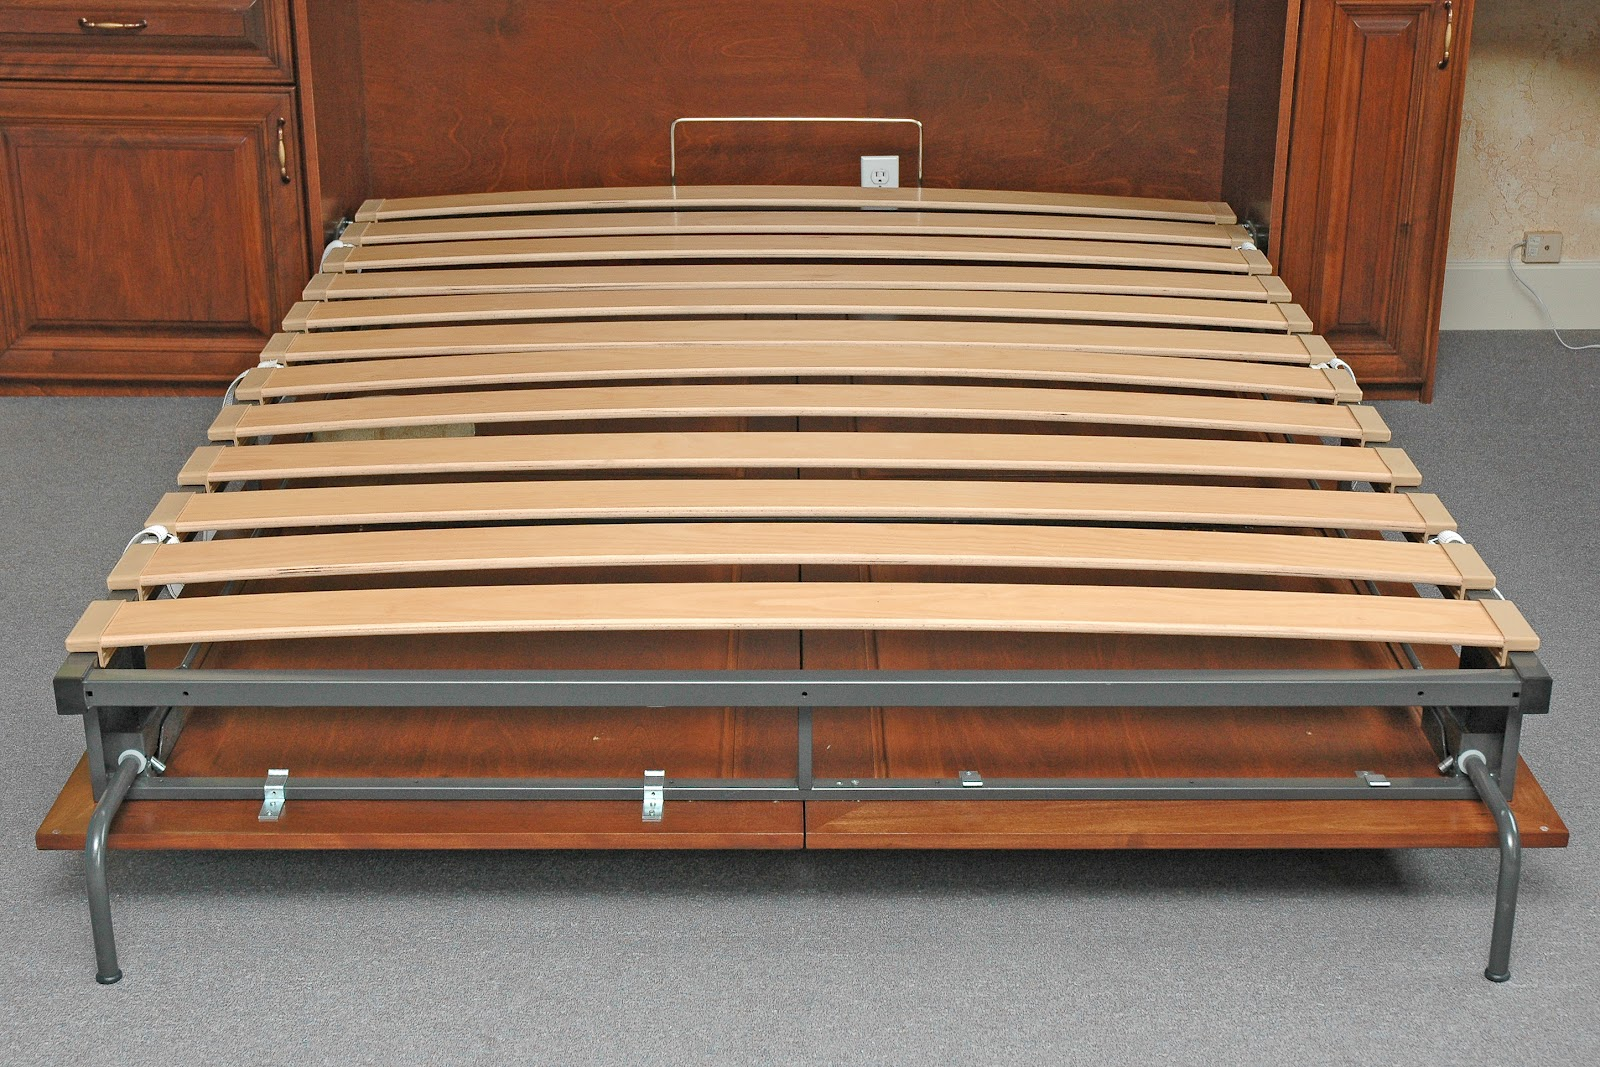 Malka in the closet custom wall beds of san francisco for Murphy beds san francisco